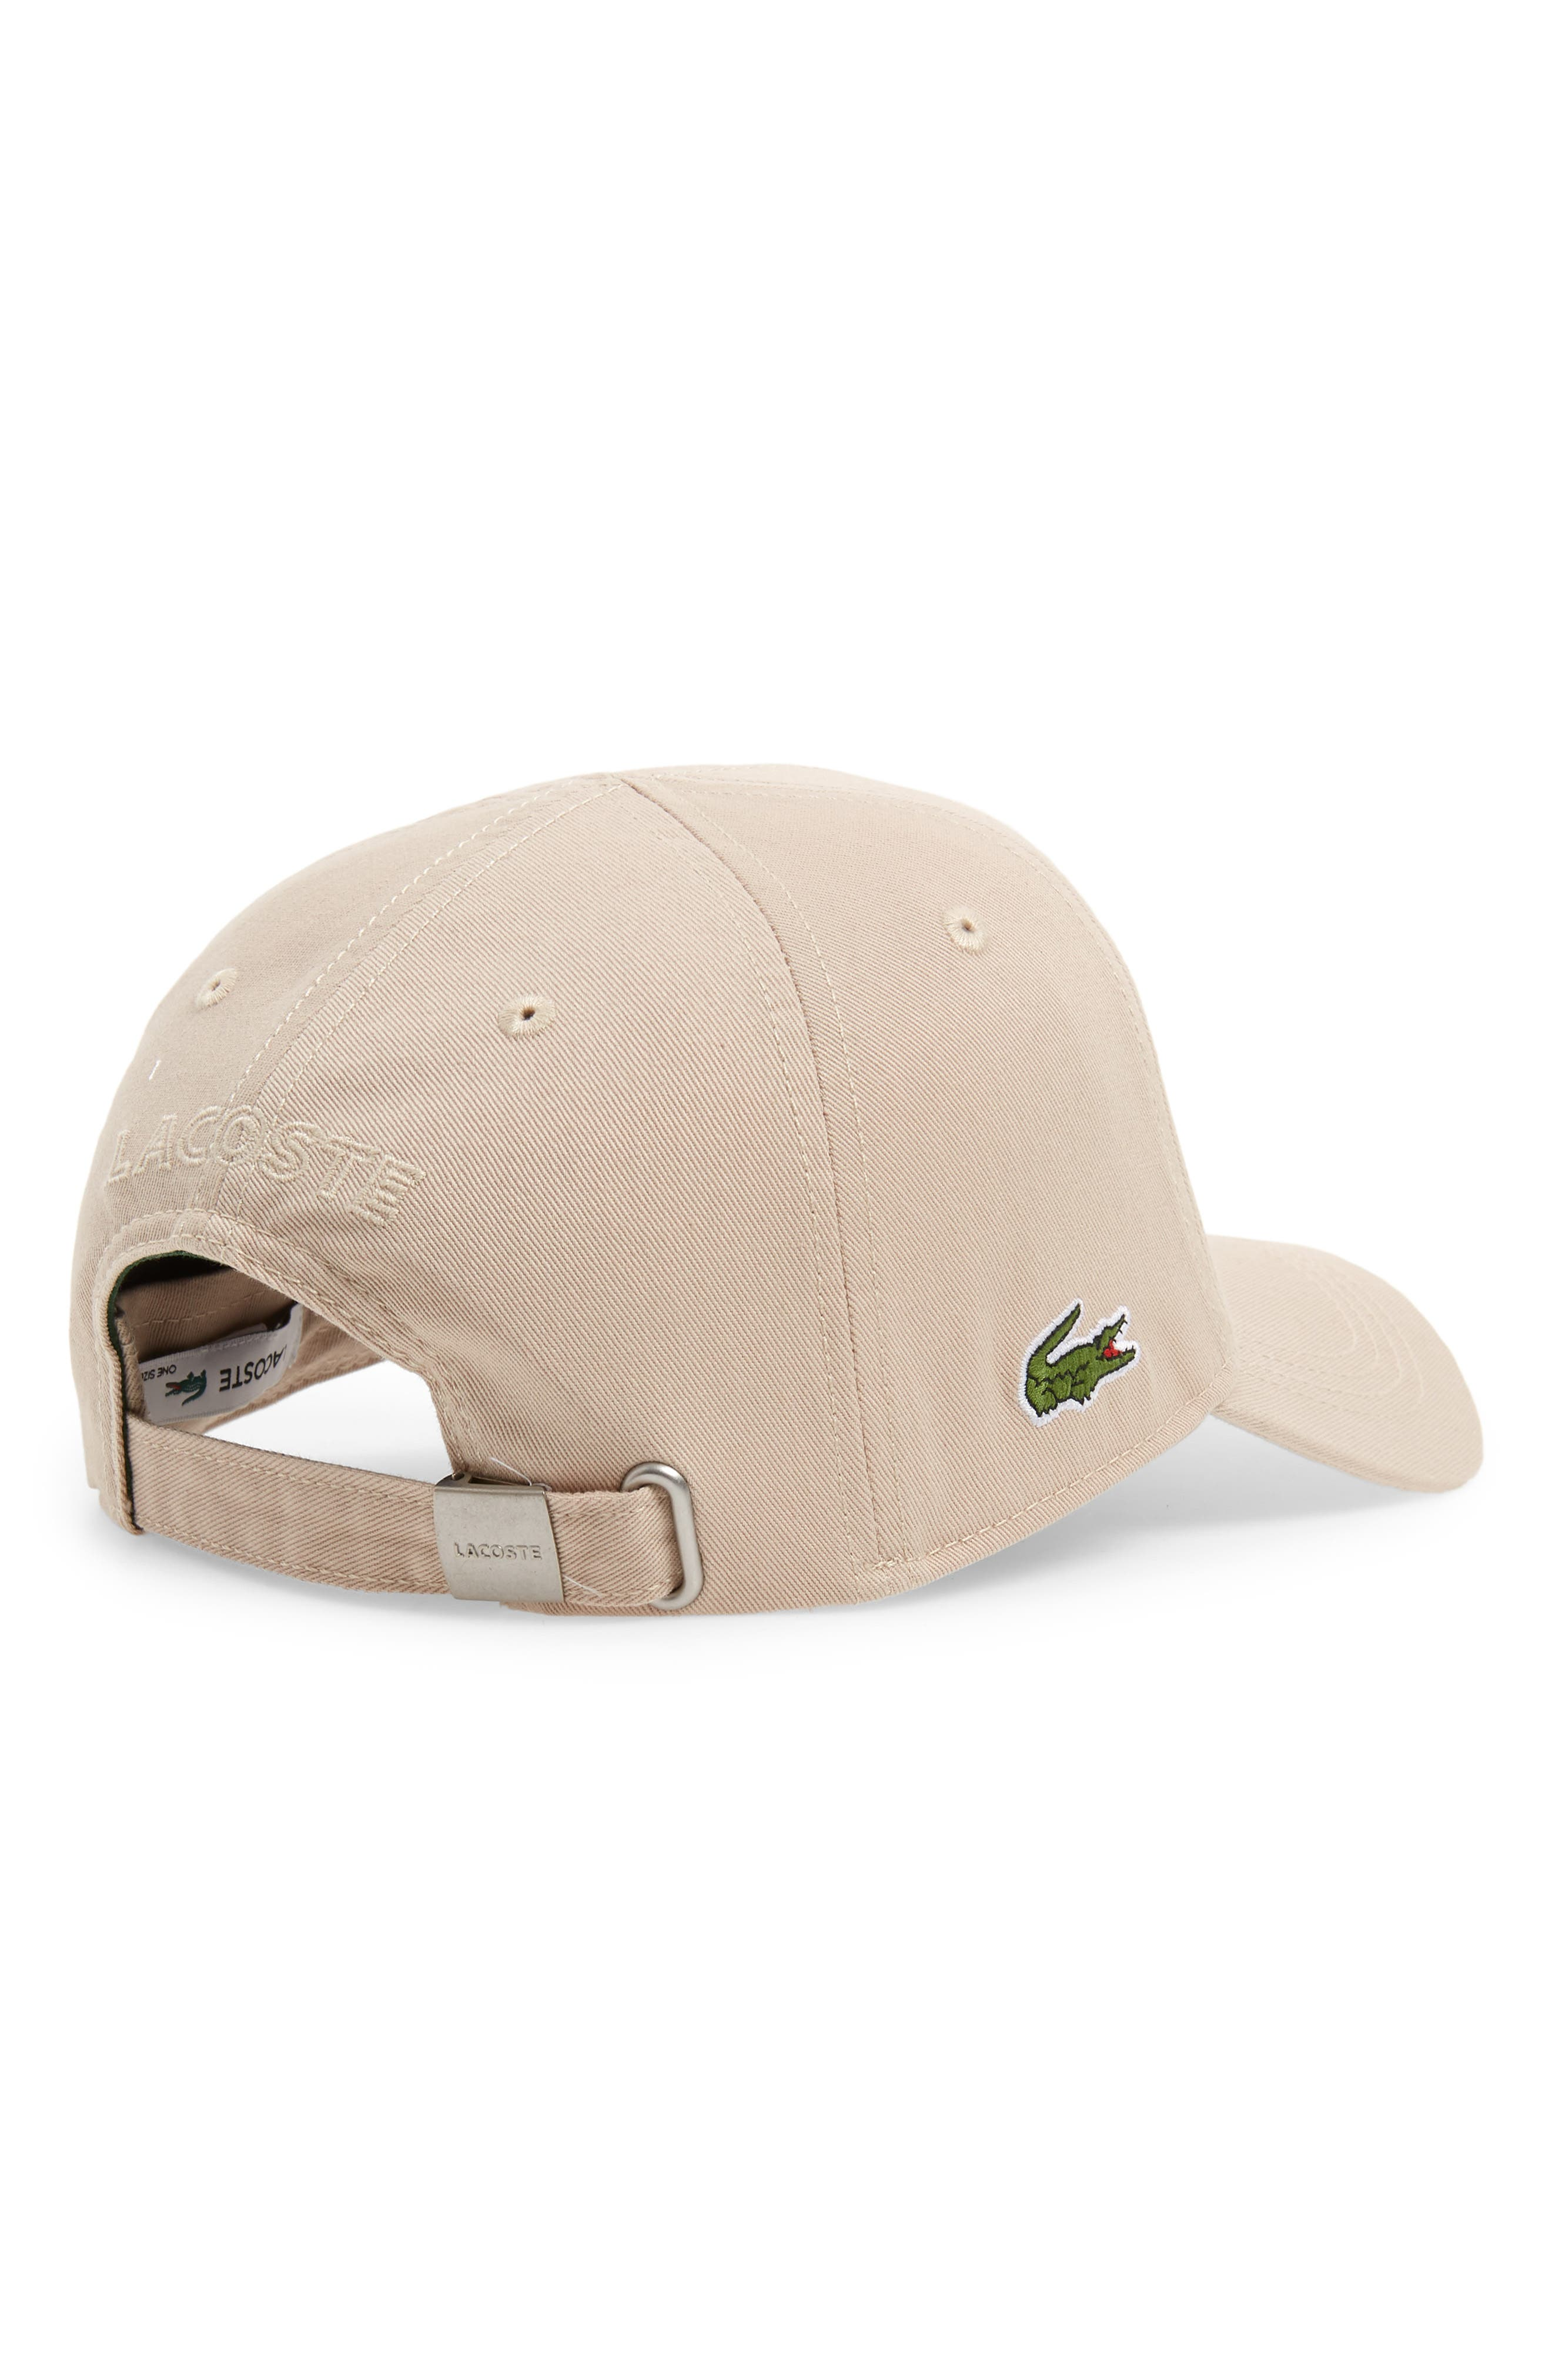 Lacoste Men s Hats Clothing 4ff8e9e21e66